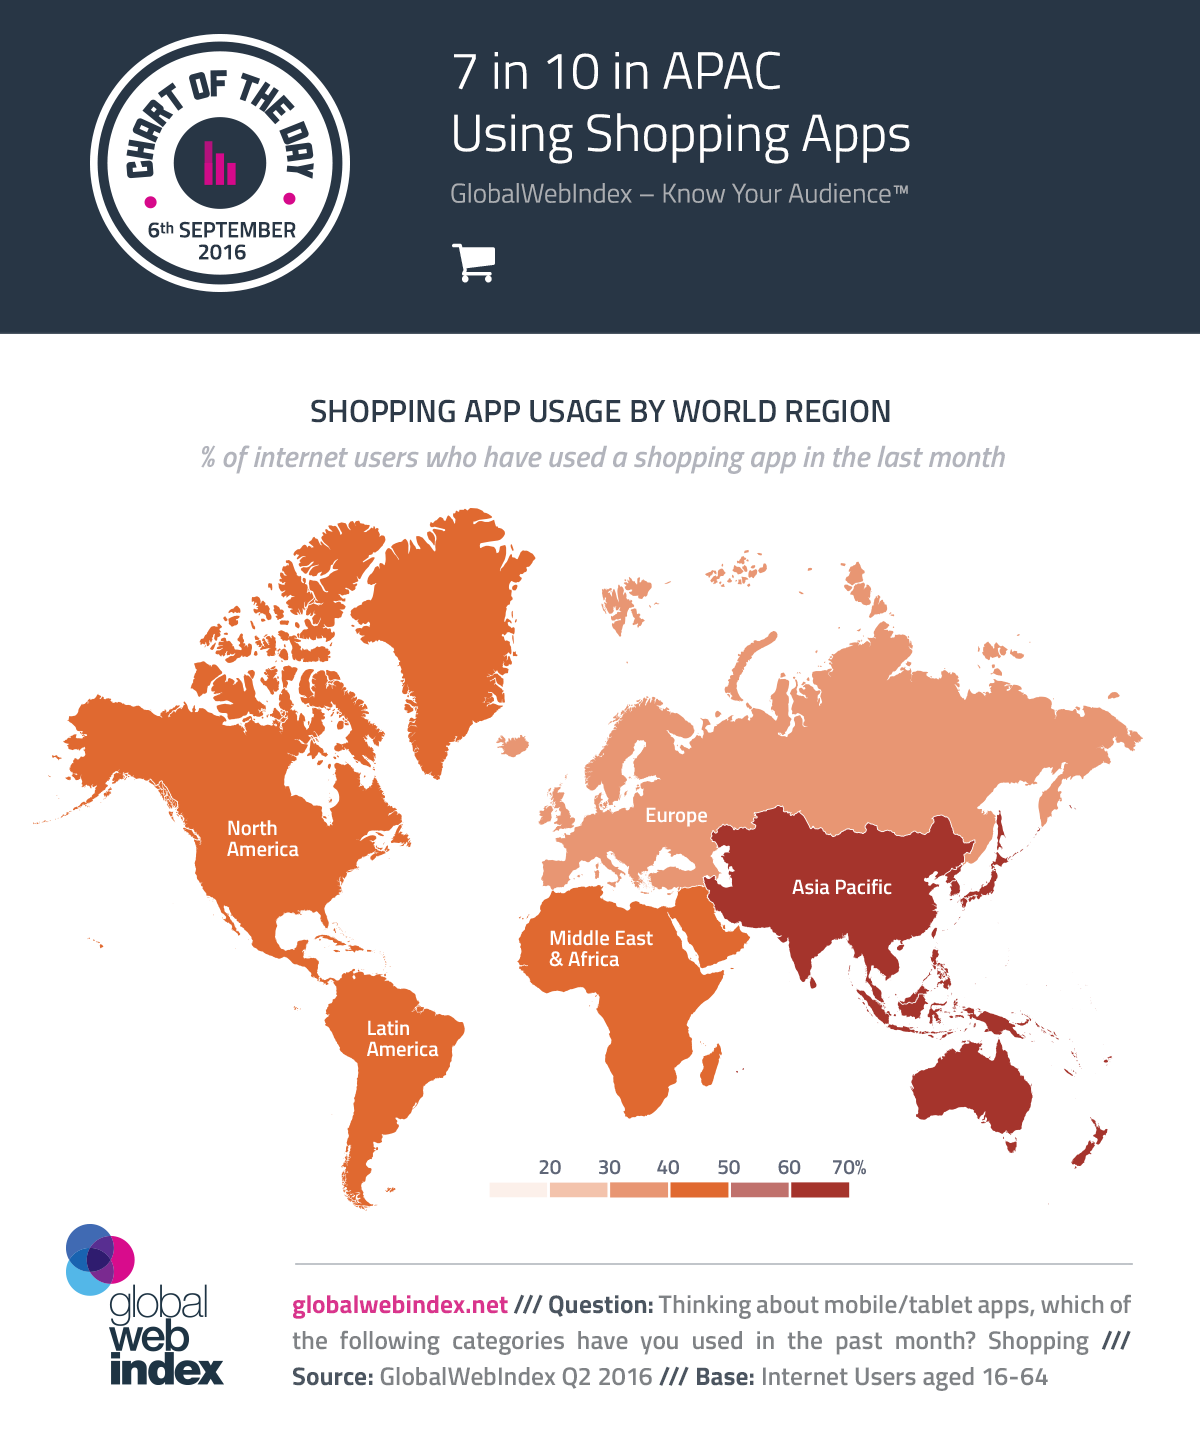 7 in 10 in APAC Using Shopping Apps